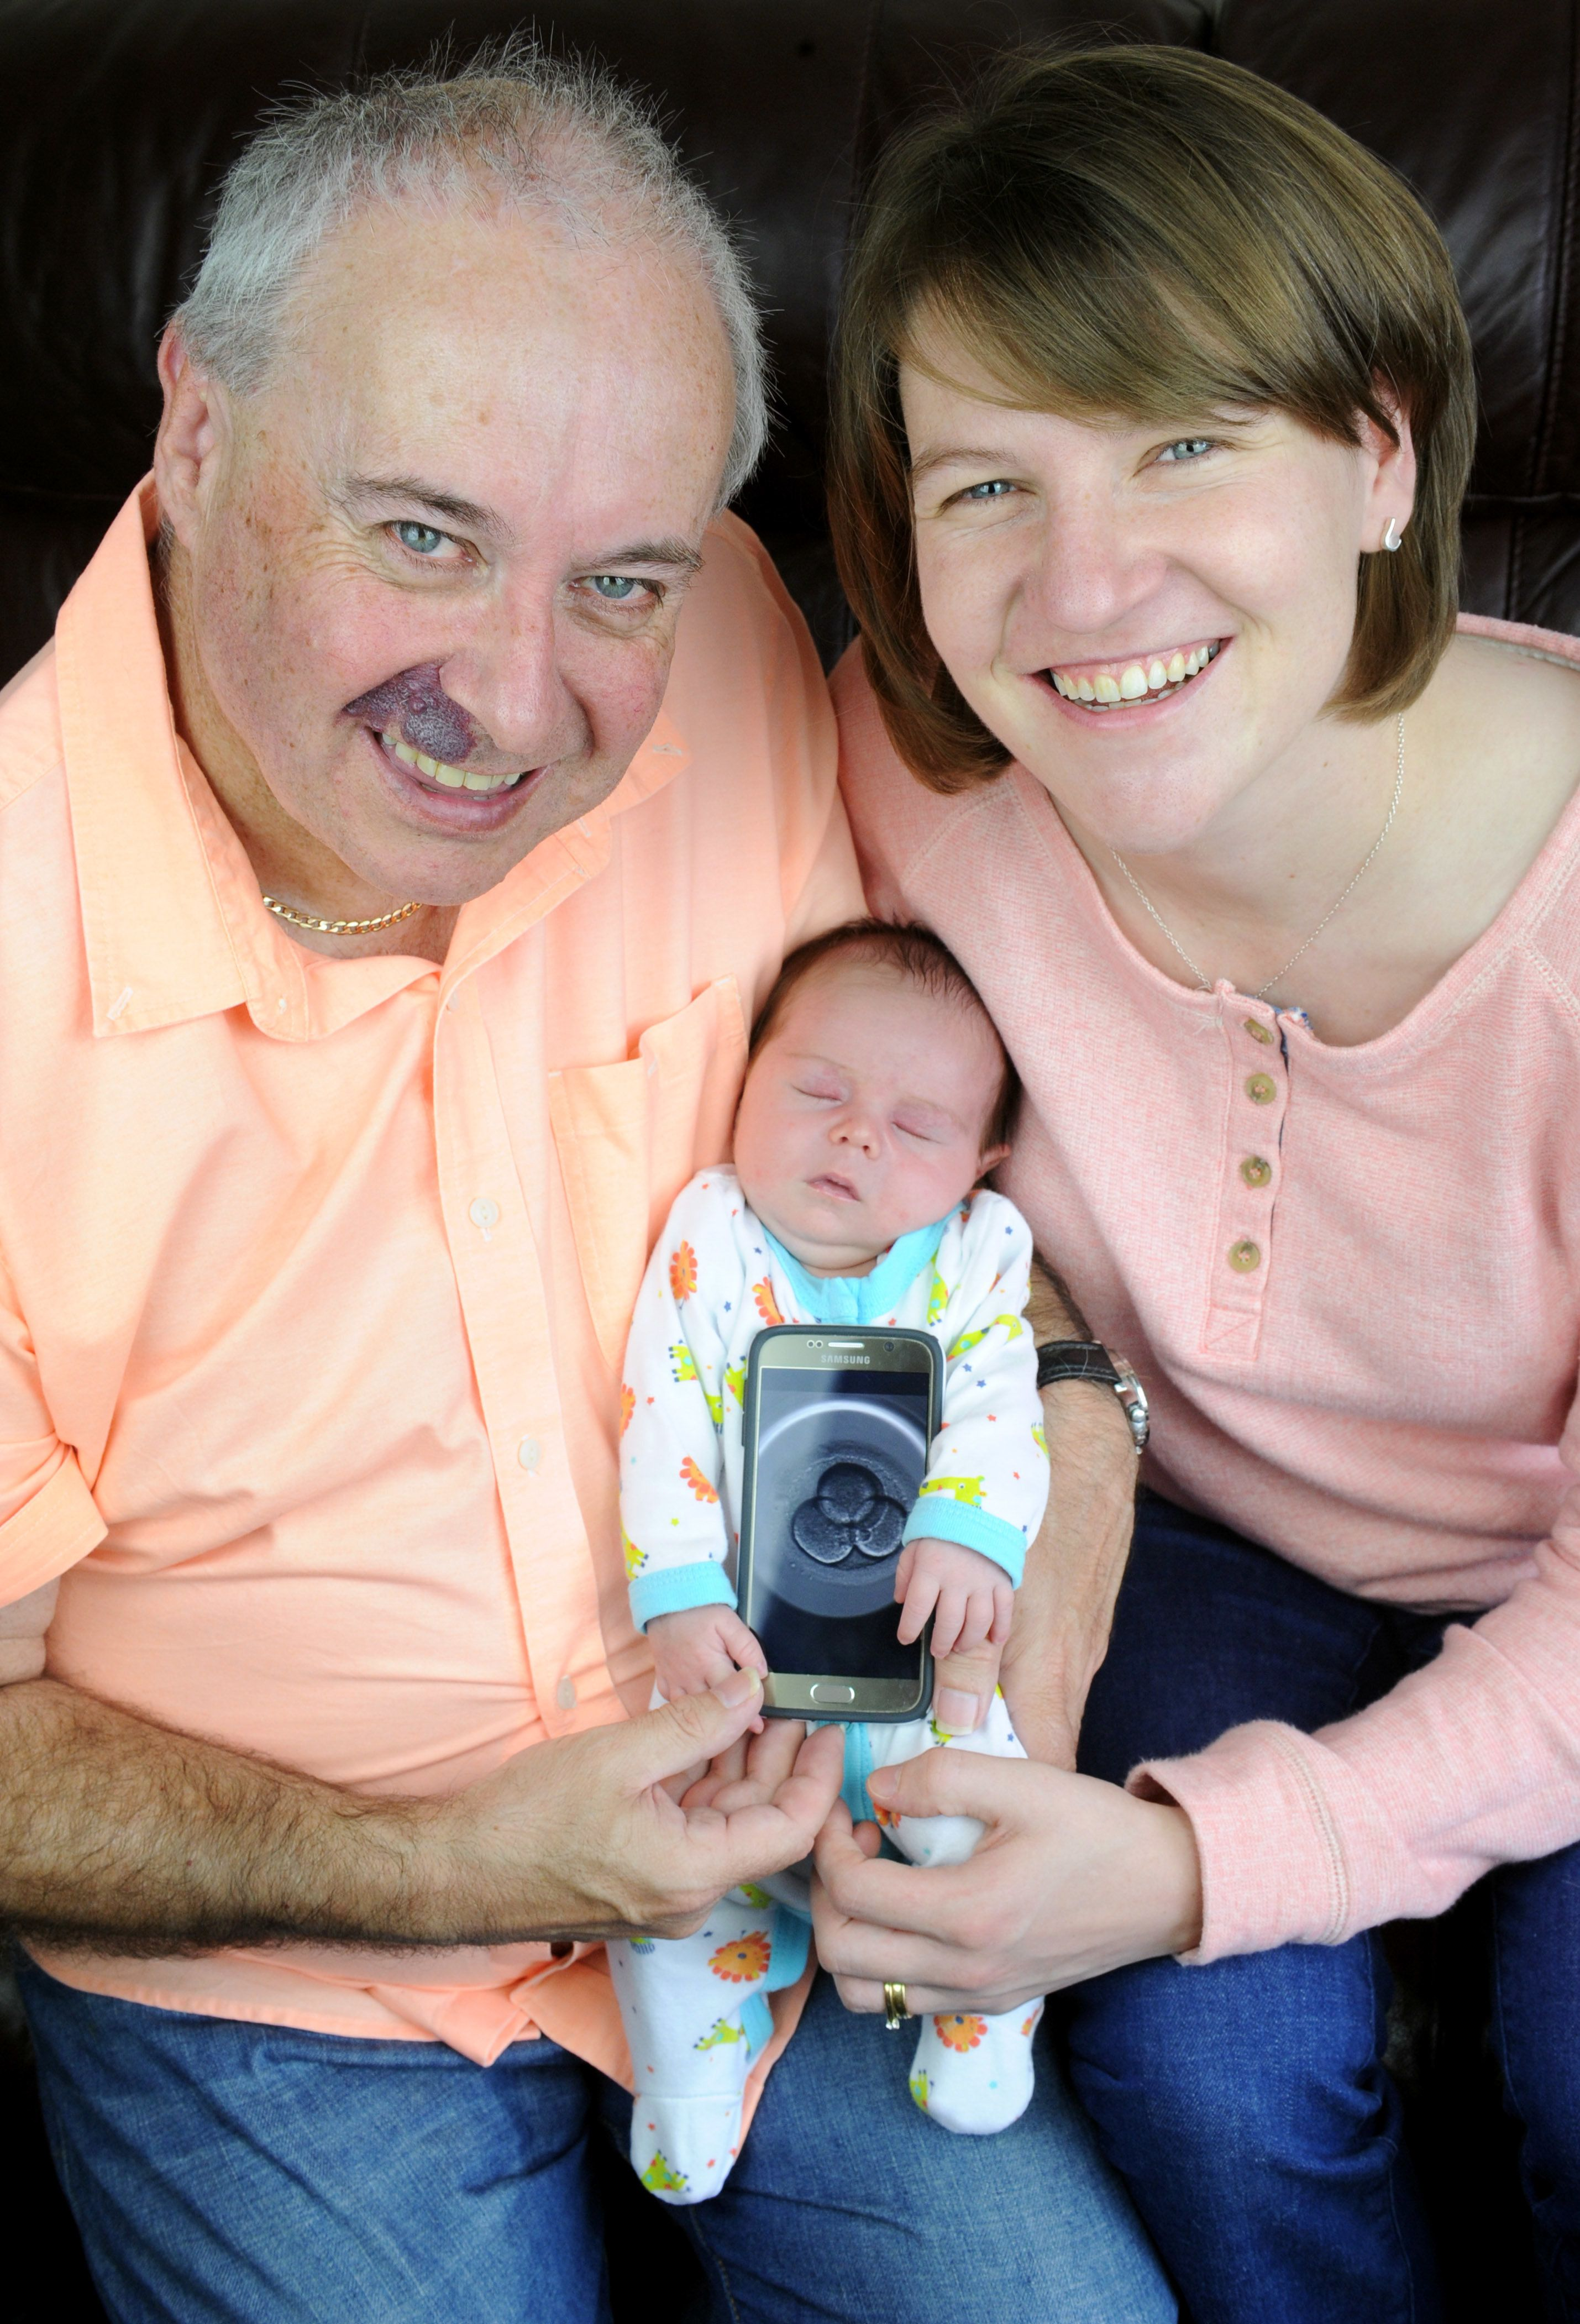 Couple With 26-Year Age Gap Celebrate Birth Of 'Miracle' Baby After Three Rounds Of